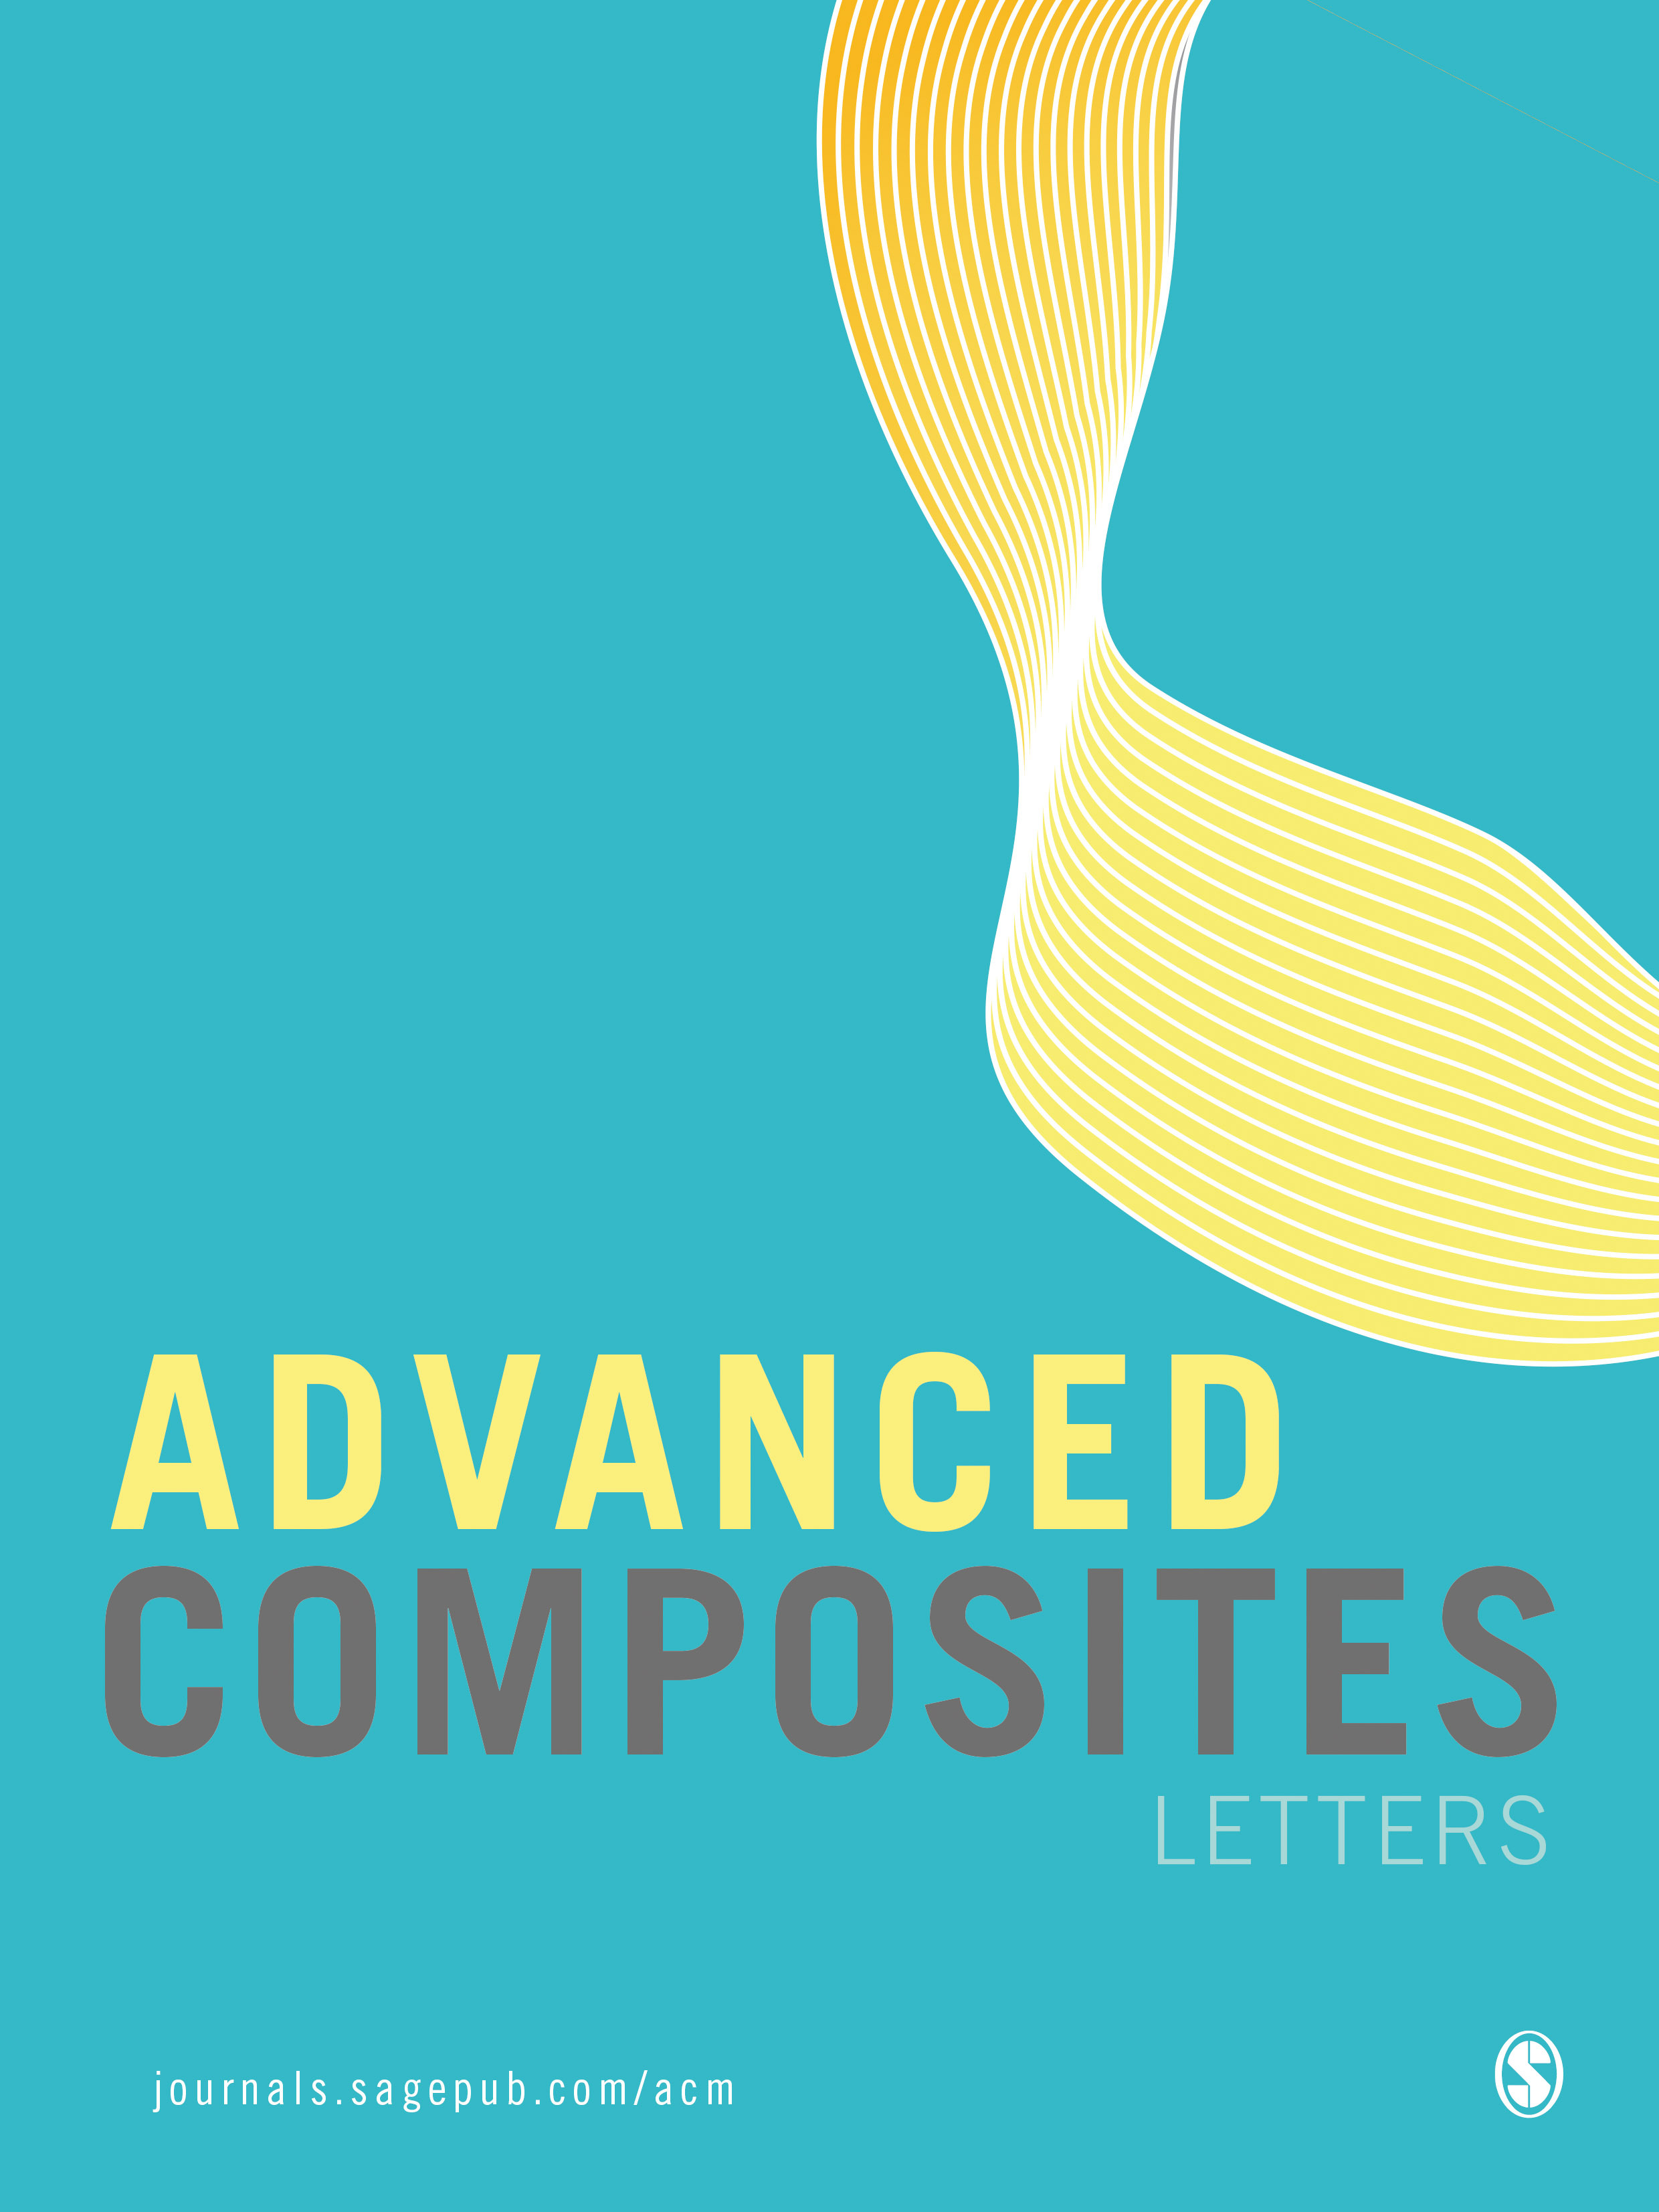 Advanced Composites Letters